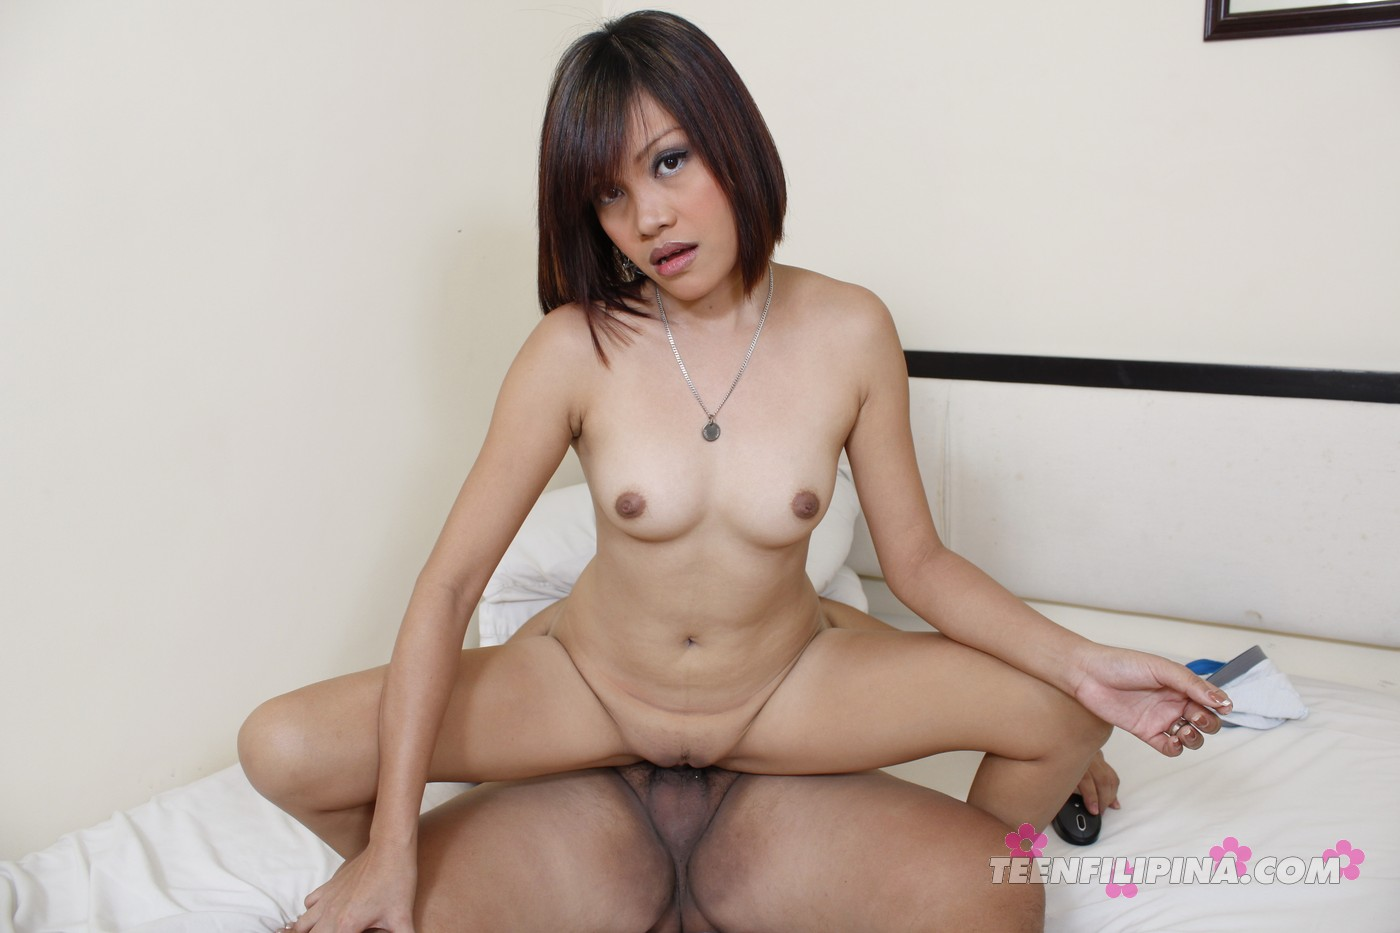 filipinasex-8 « My Filipina Sex Diaries – Wild Sexual Adventures ...